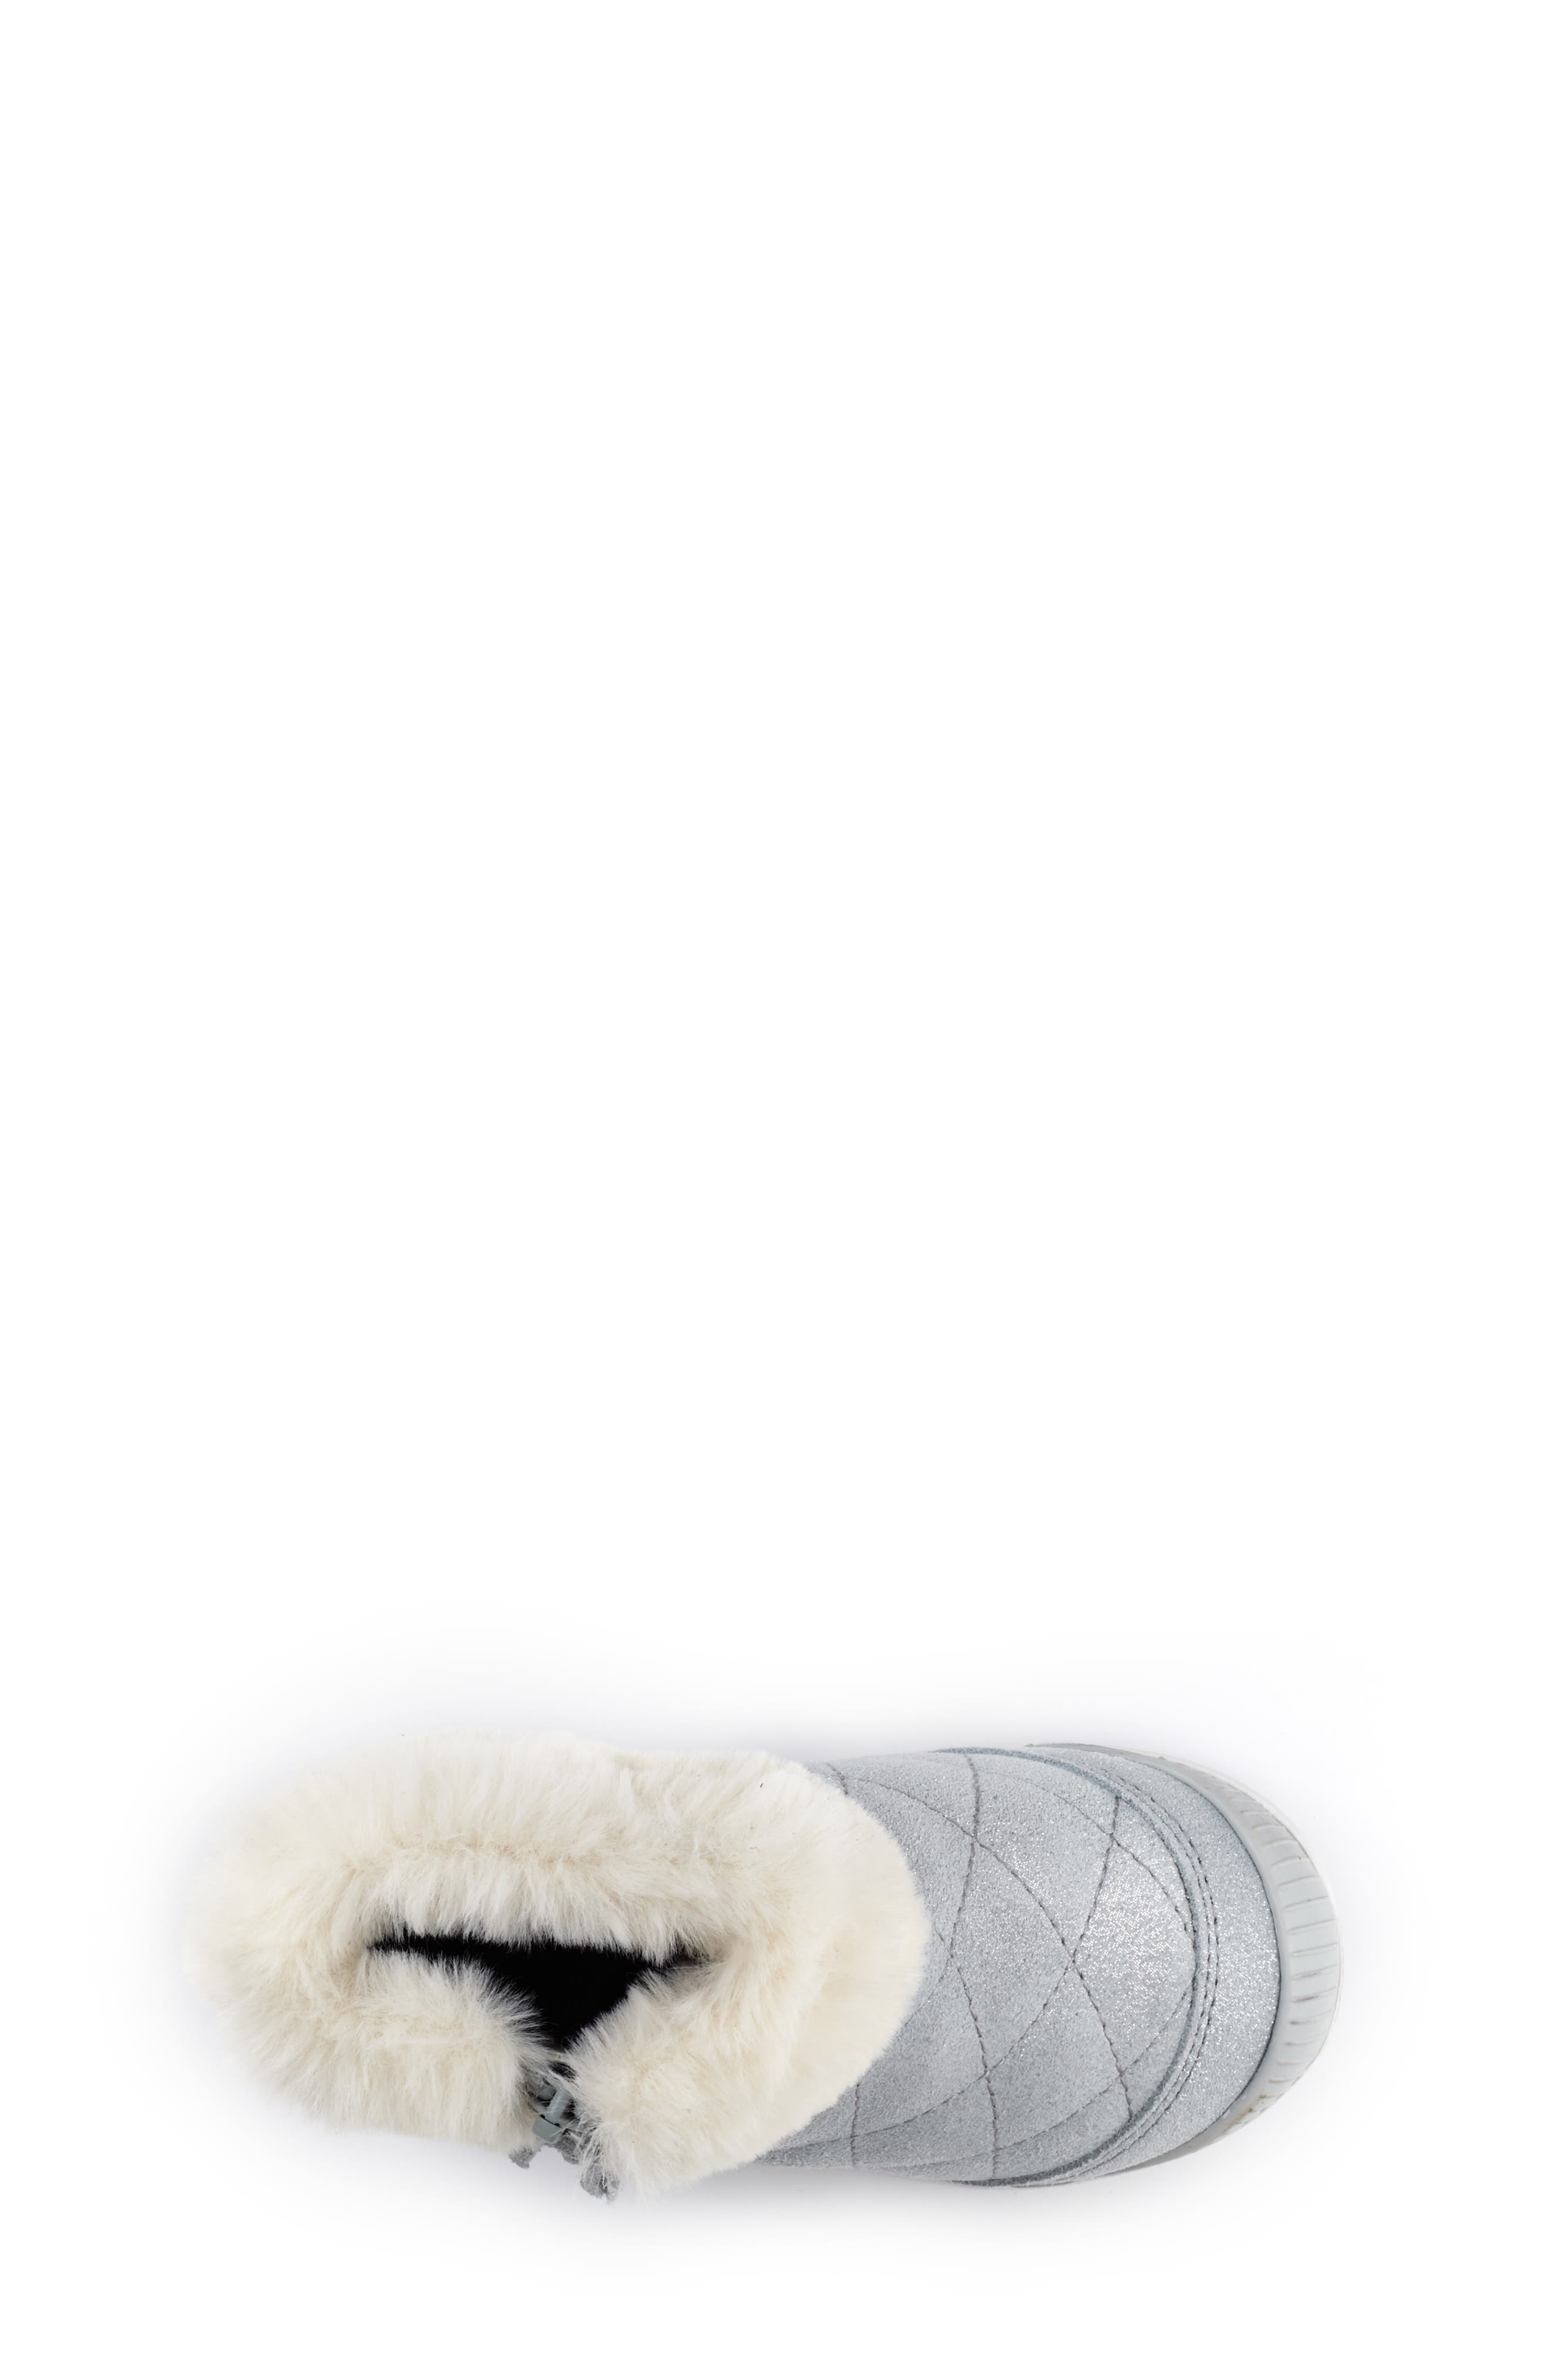 Chloe Faux Fur Quilted Bootie,                             Alternate thumbnail 4, color,                             SILVER